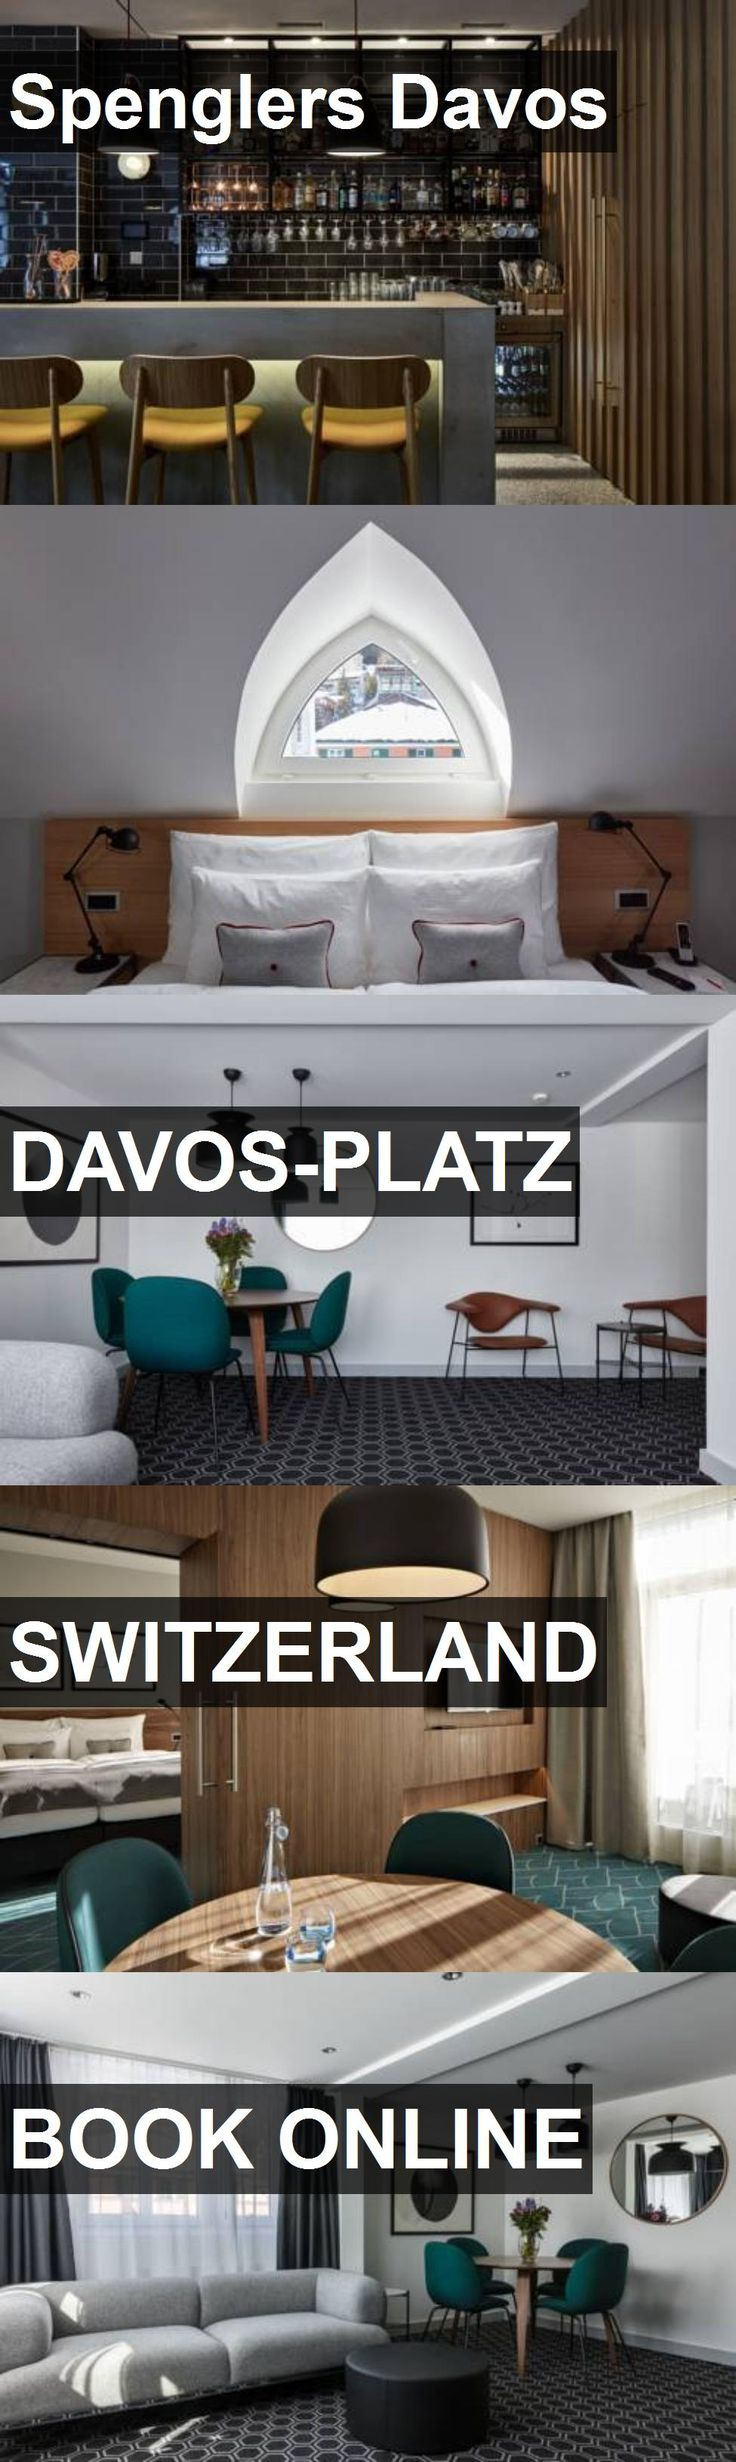 Hotel Spenglers Davos in Davos-Platz, Switzerland. For more information, photos, reviews and best prices please follow the link. #Switzerland #Davos-Platz #travel #vacation #hotel